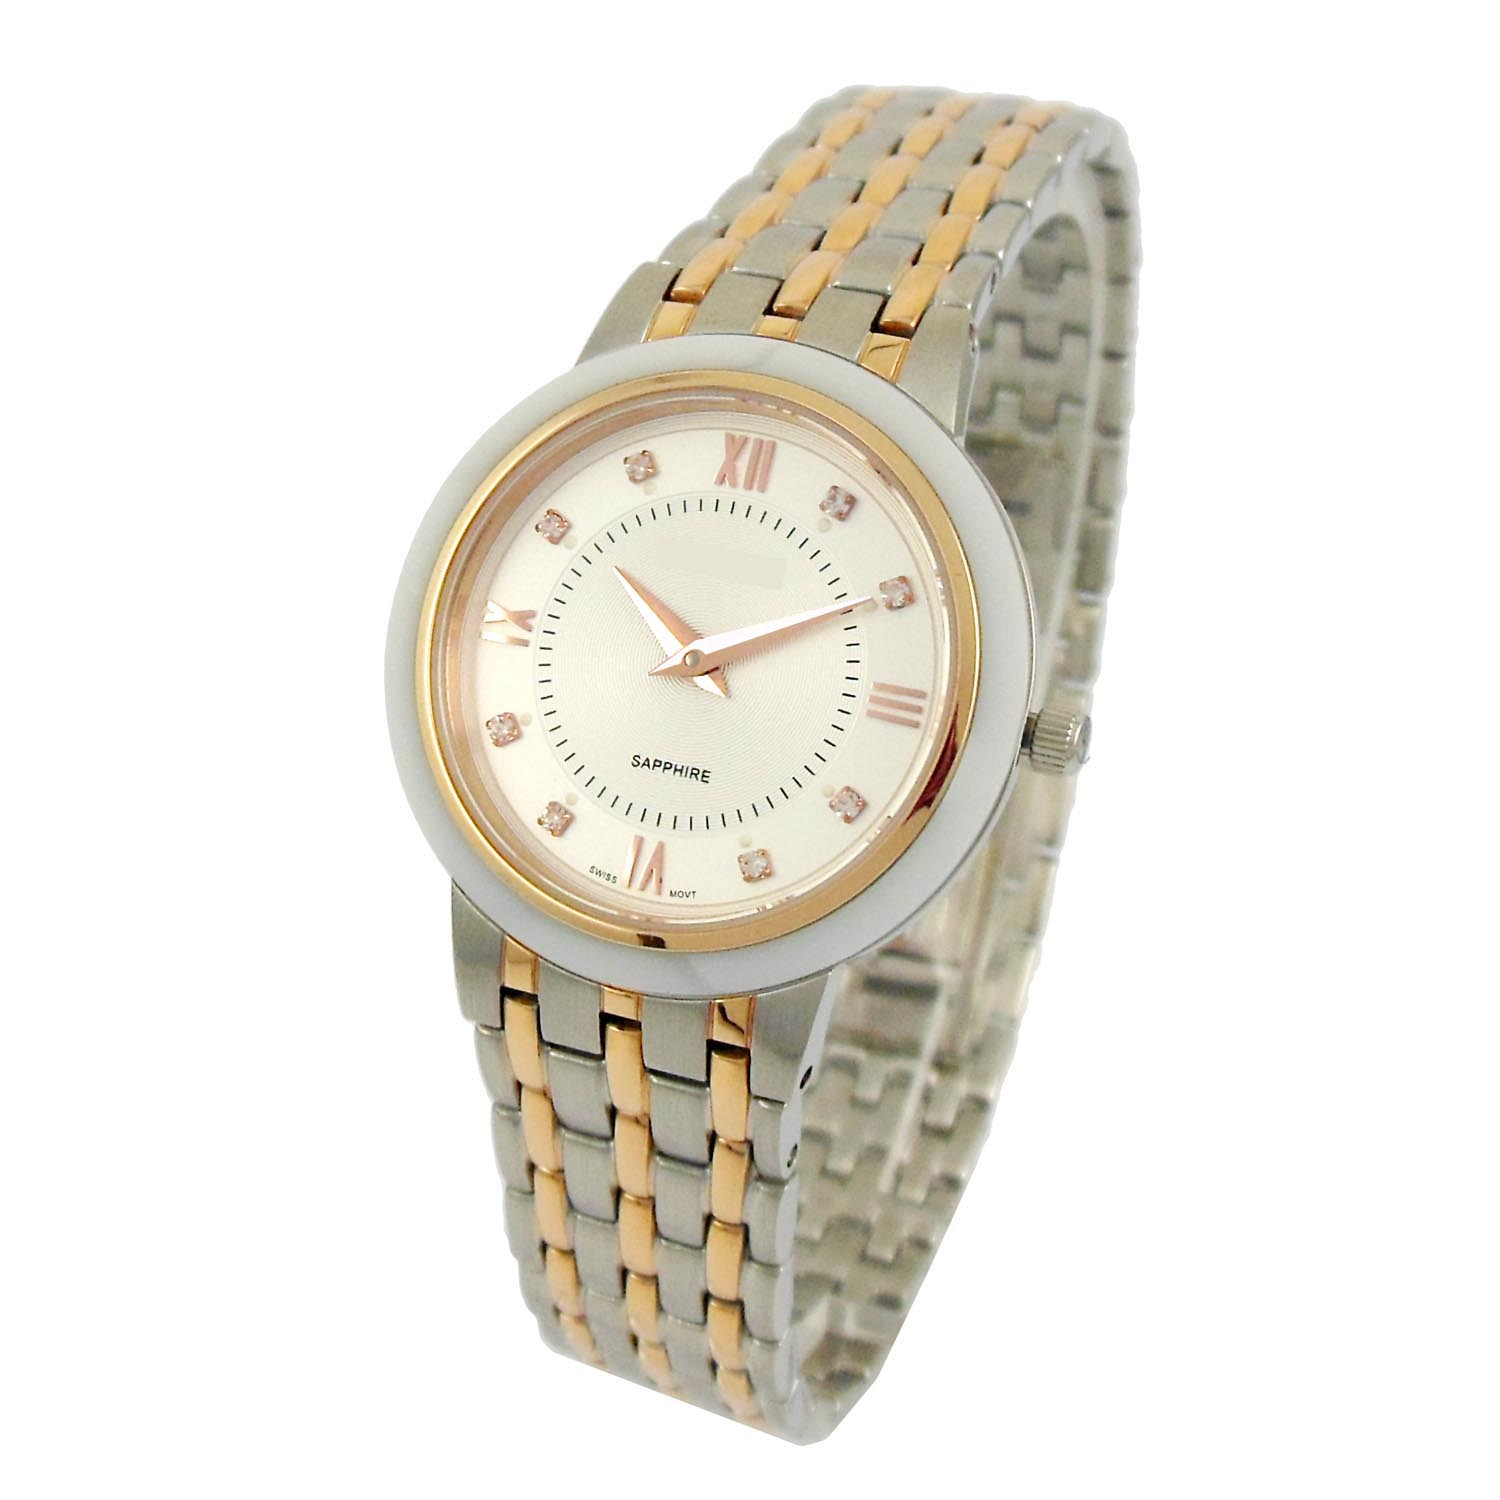 Two-tone luminous stainless steel watch